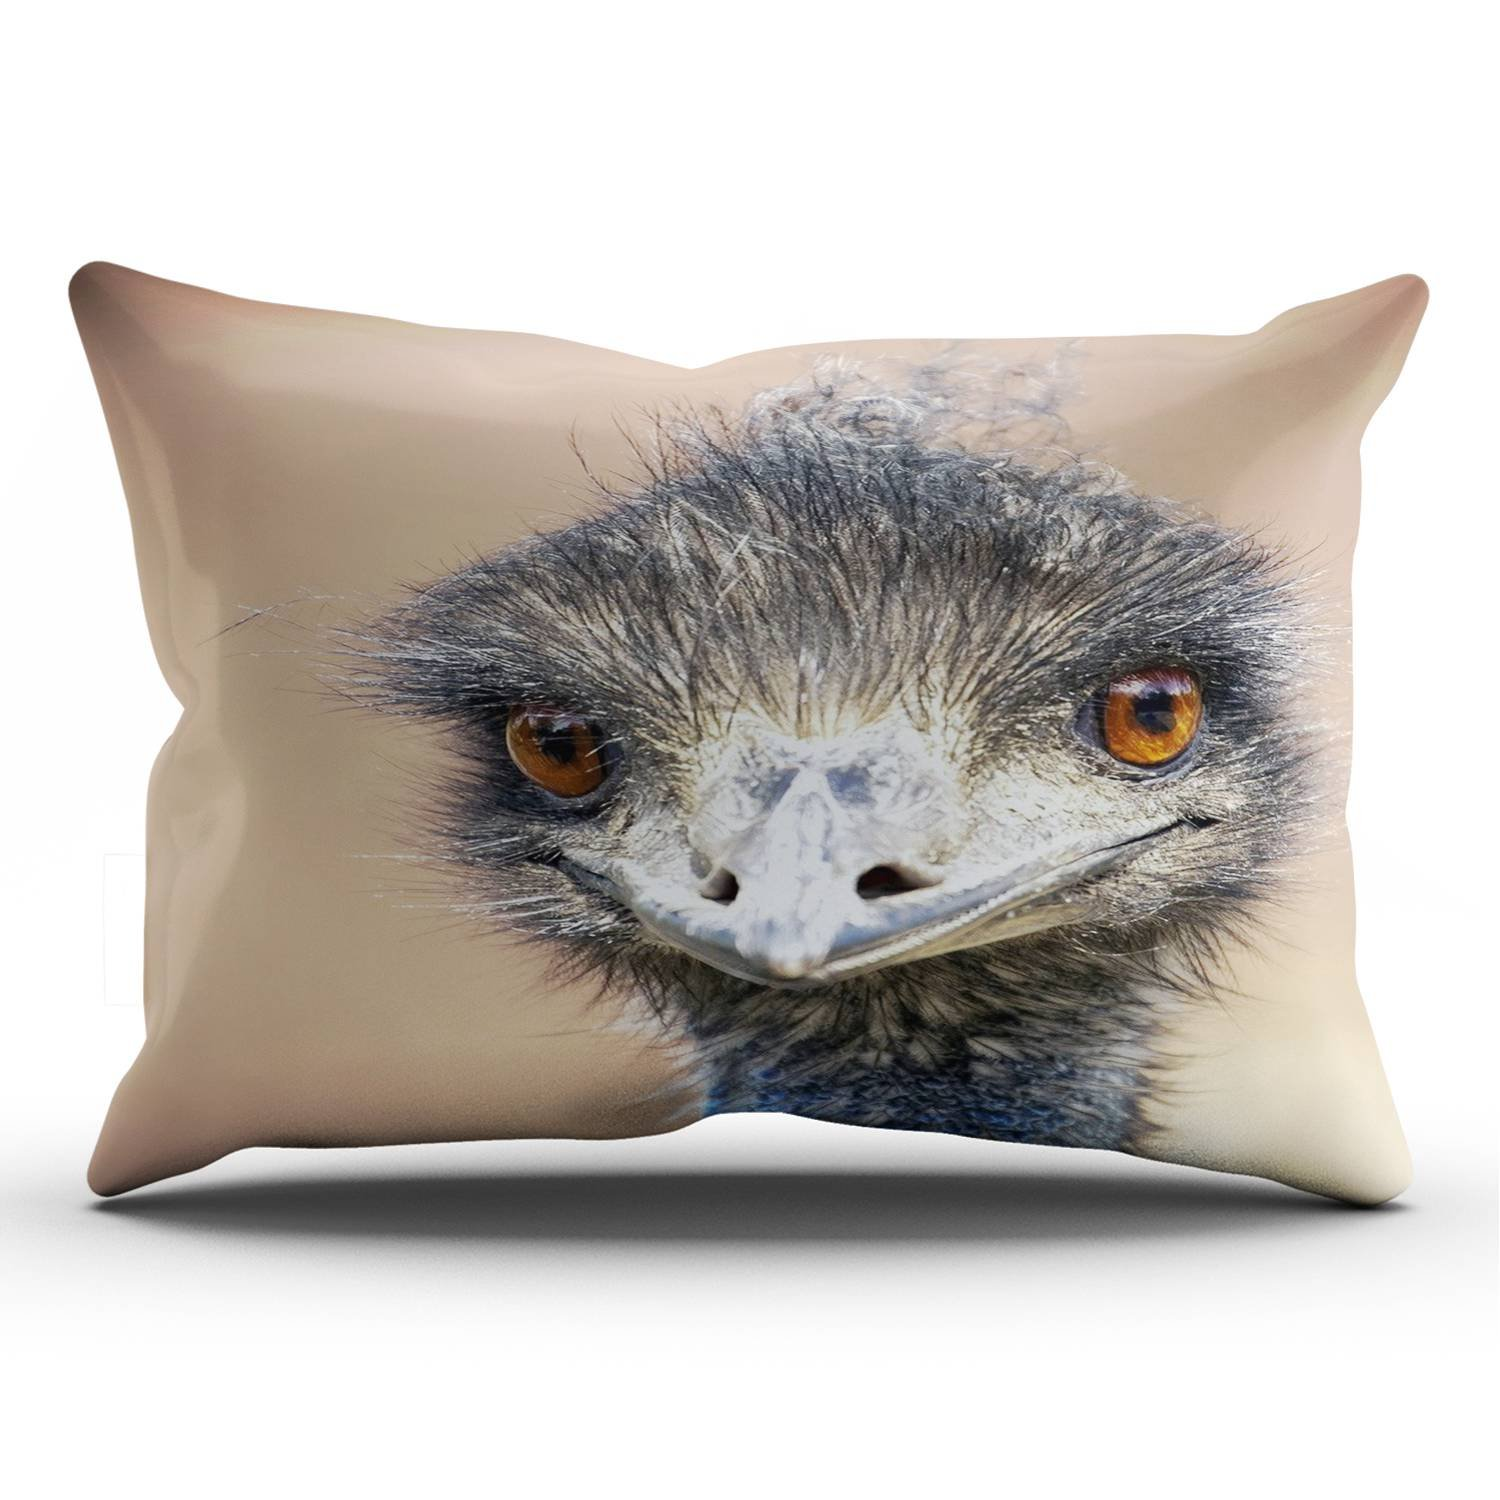 KEIBIKE Personalized Animal Emu Bird Ostrich Rectangle Decorative Pillowcases Art Zippered King Pillow Covers Cases 20x36 Inches One Sided